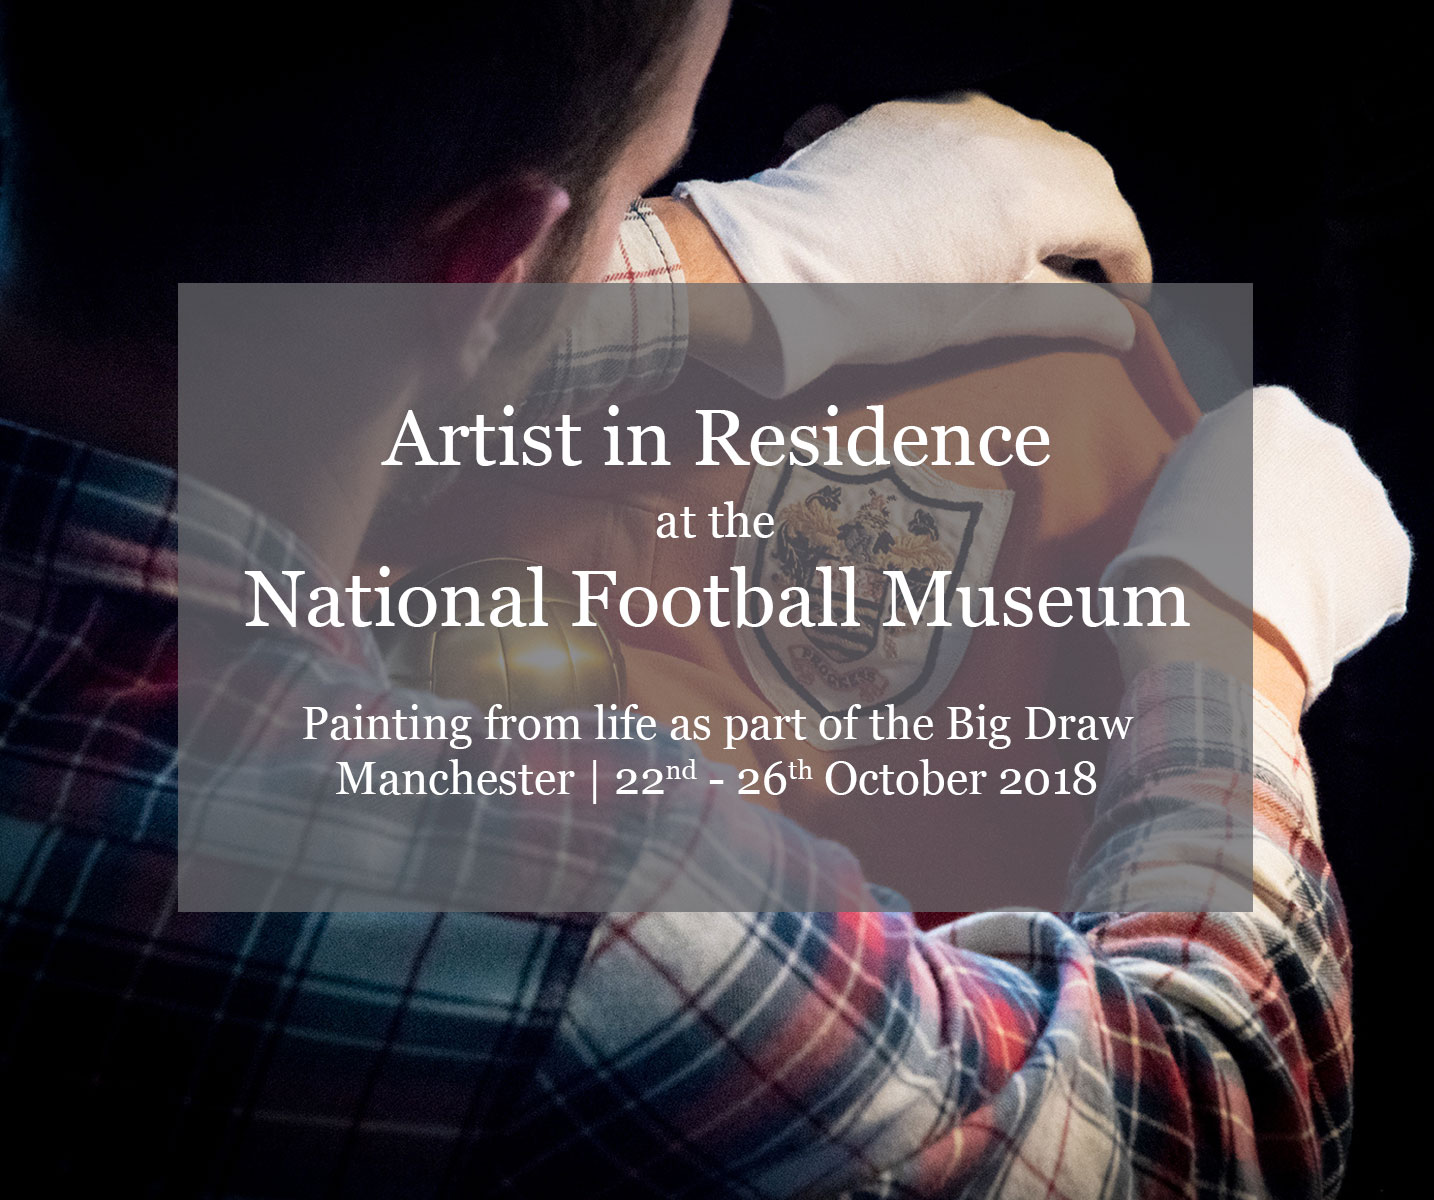 Artist in Residence at the National Football Museum